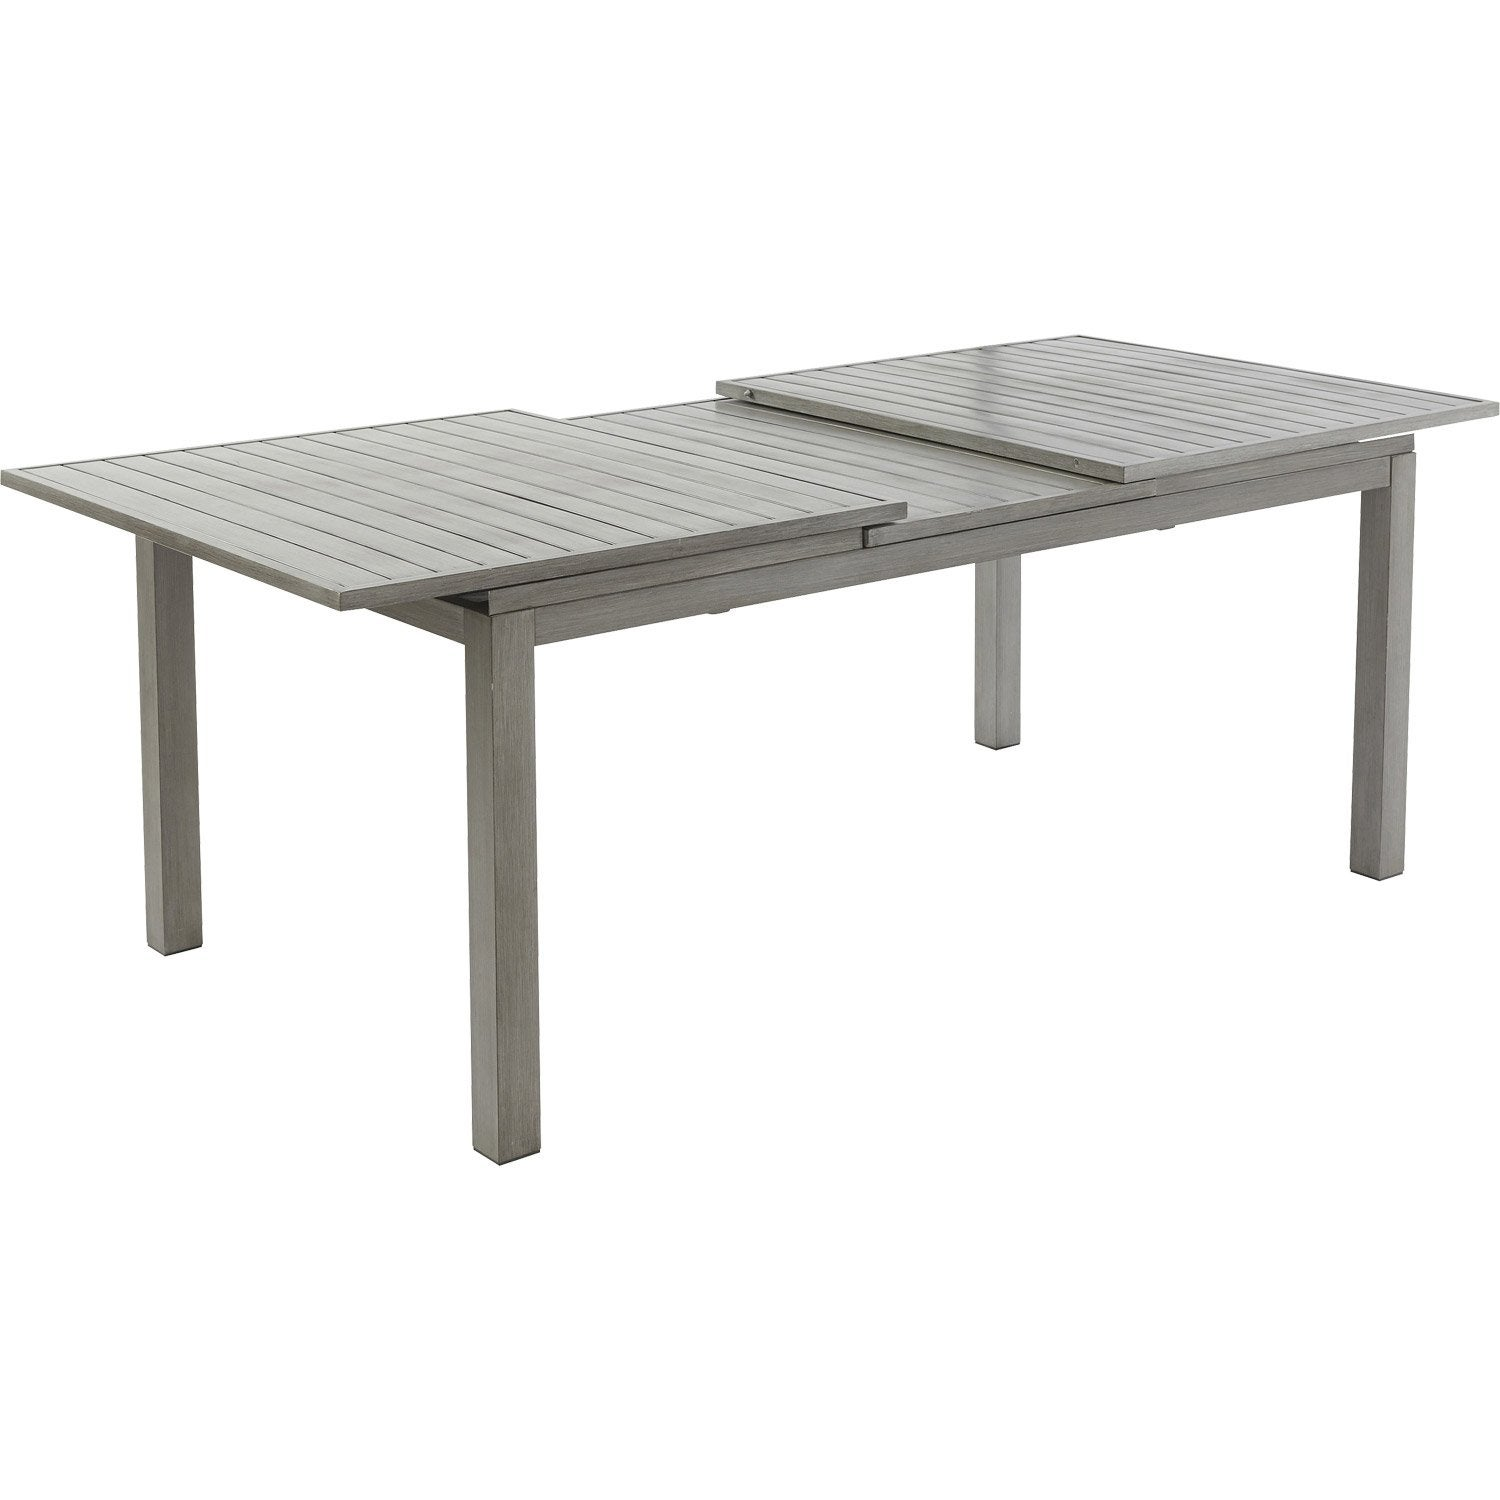 Table de jardin avec extension rectangulaire aluwood for Table de nuit leroy merlin